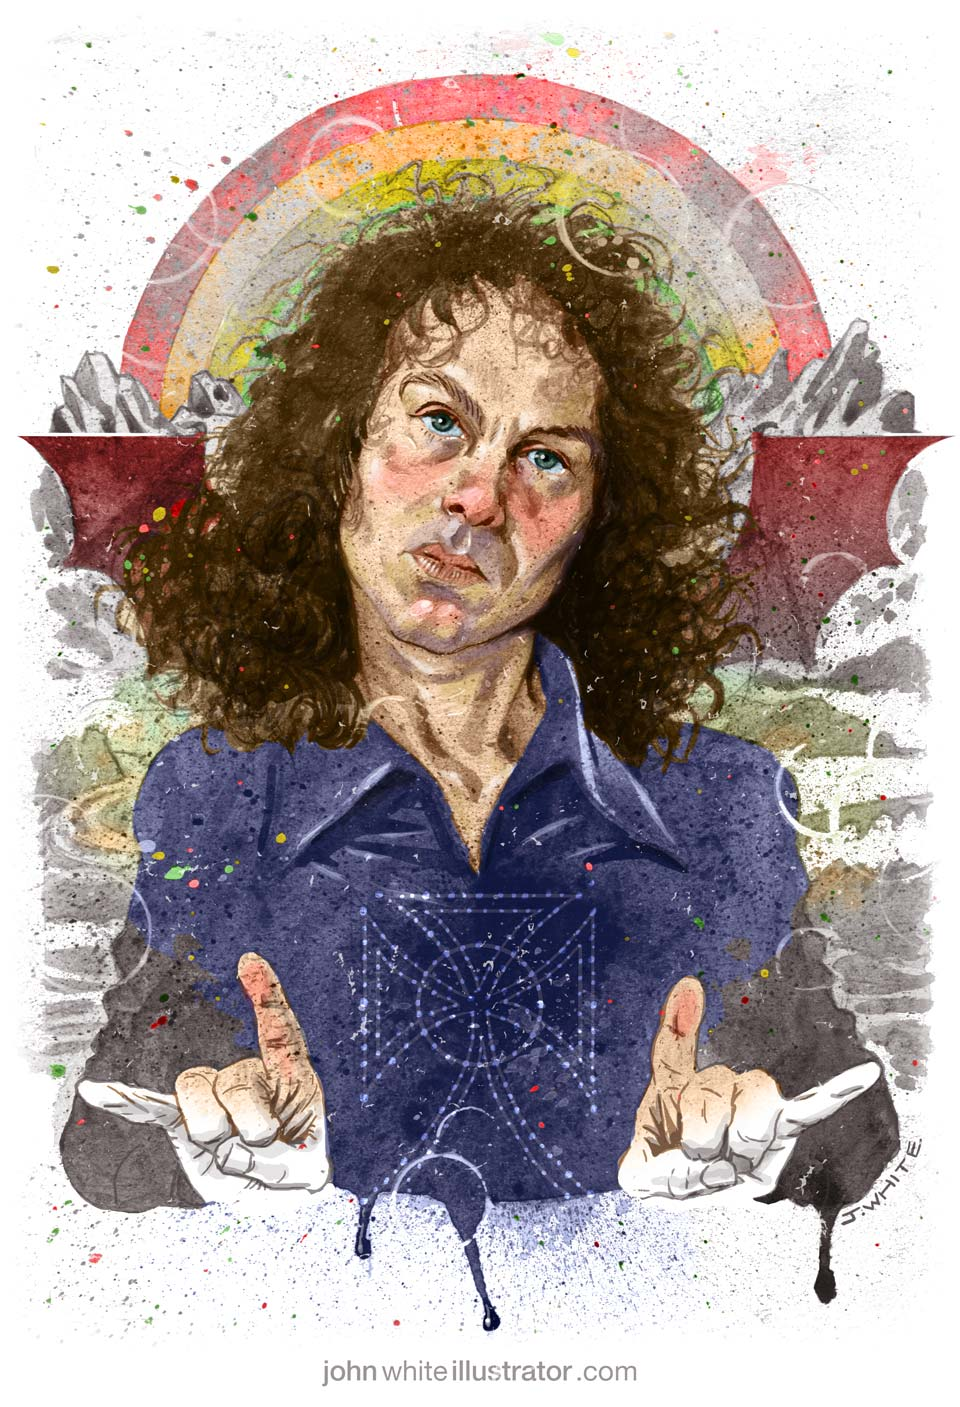 colour illustration art of ronnie james dio rock heavy metal singer